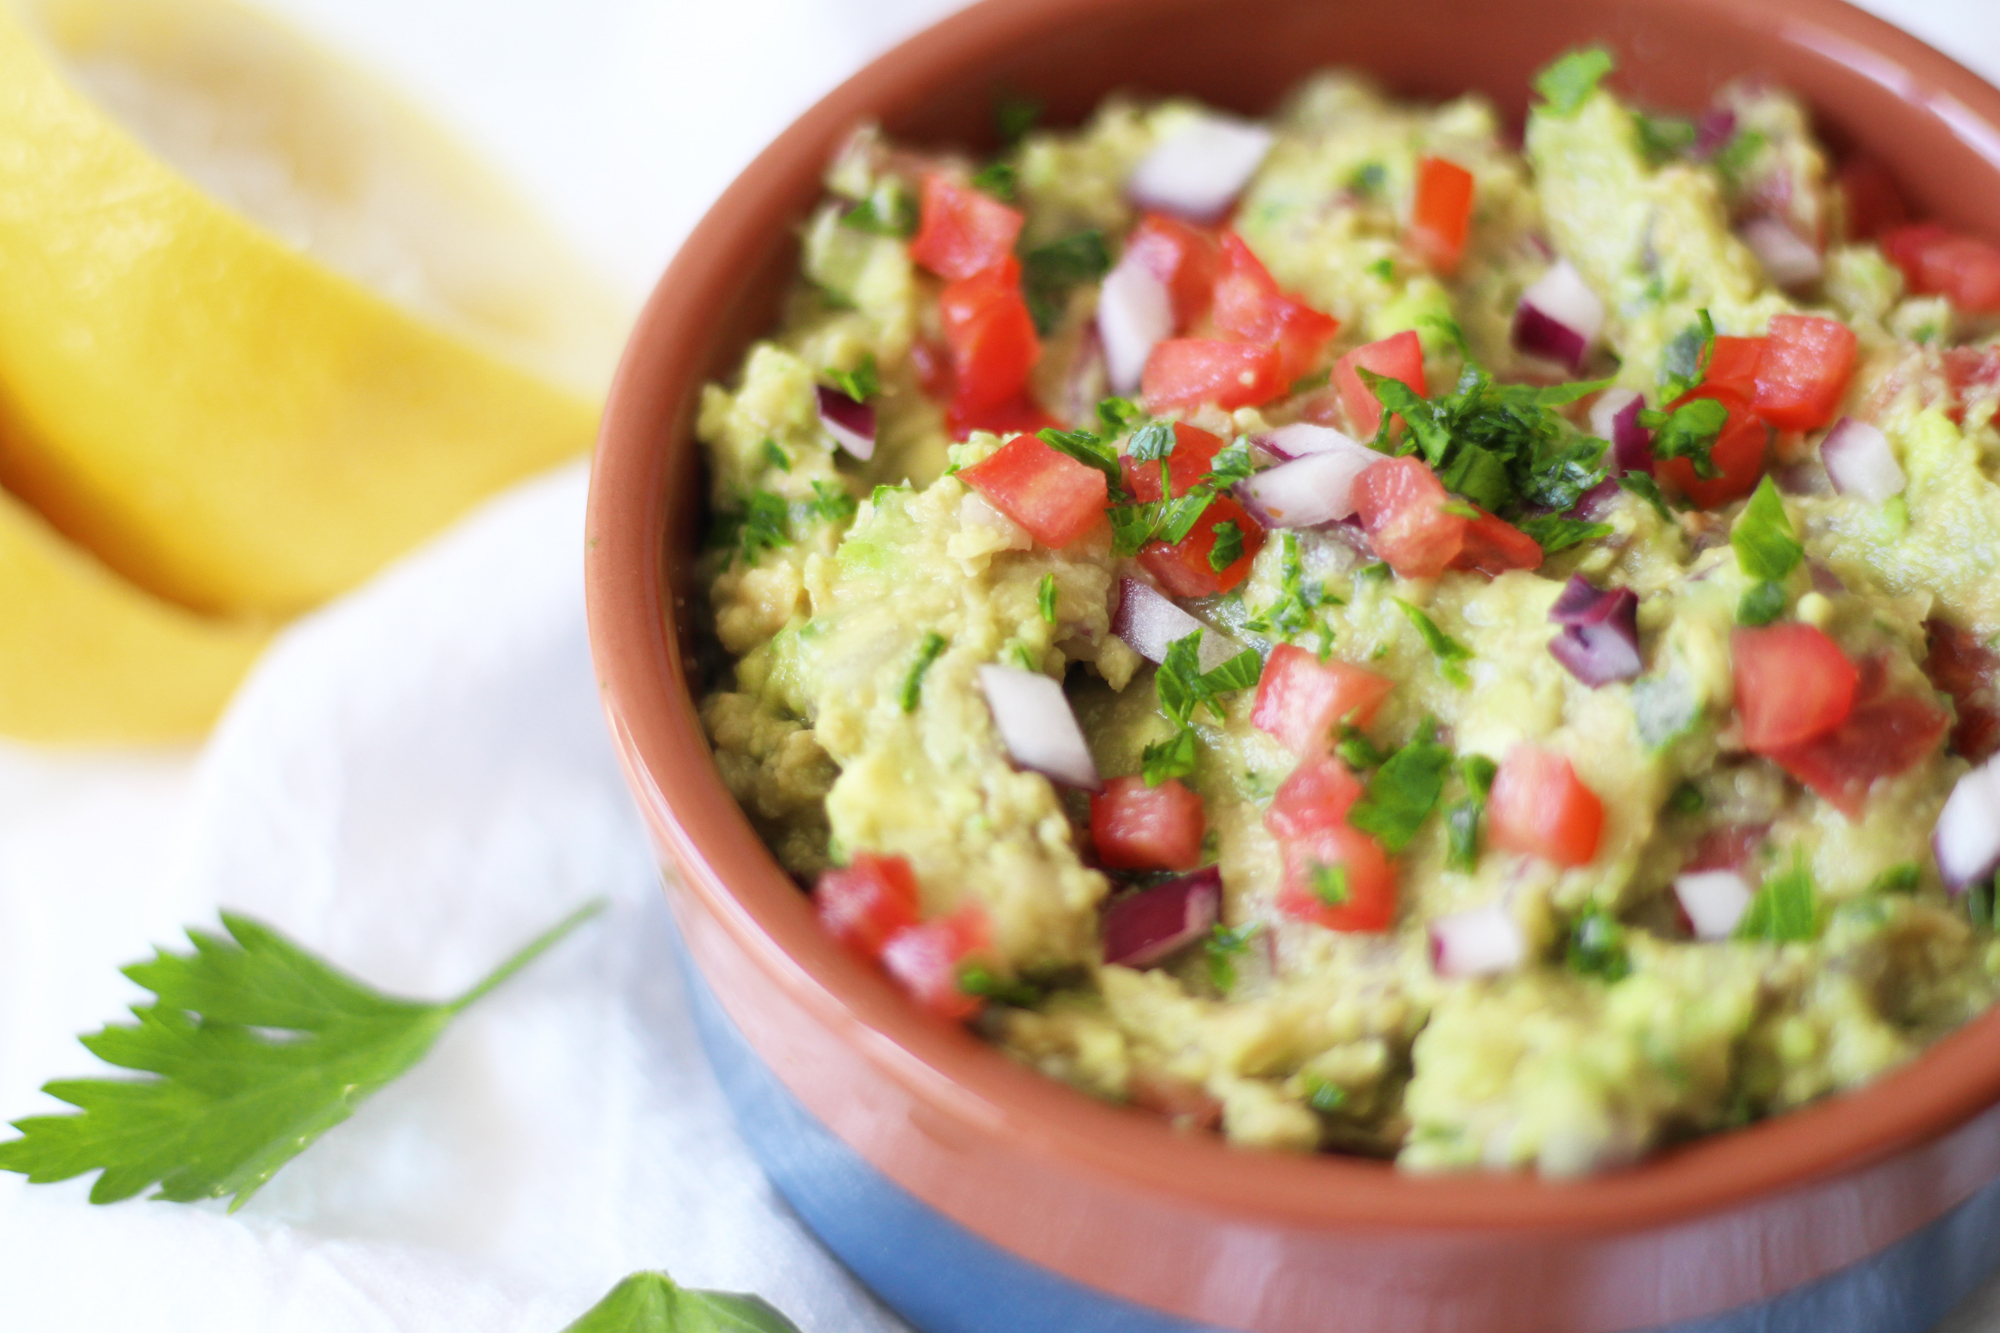 Mediterranean Chickpea Guacamole - a fun twist on the classic with the addition of chickpeas! A tasty snack, and not to mention cheaper ingredients!